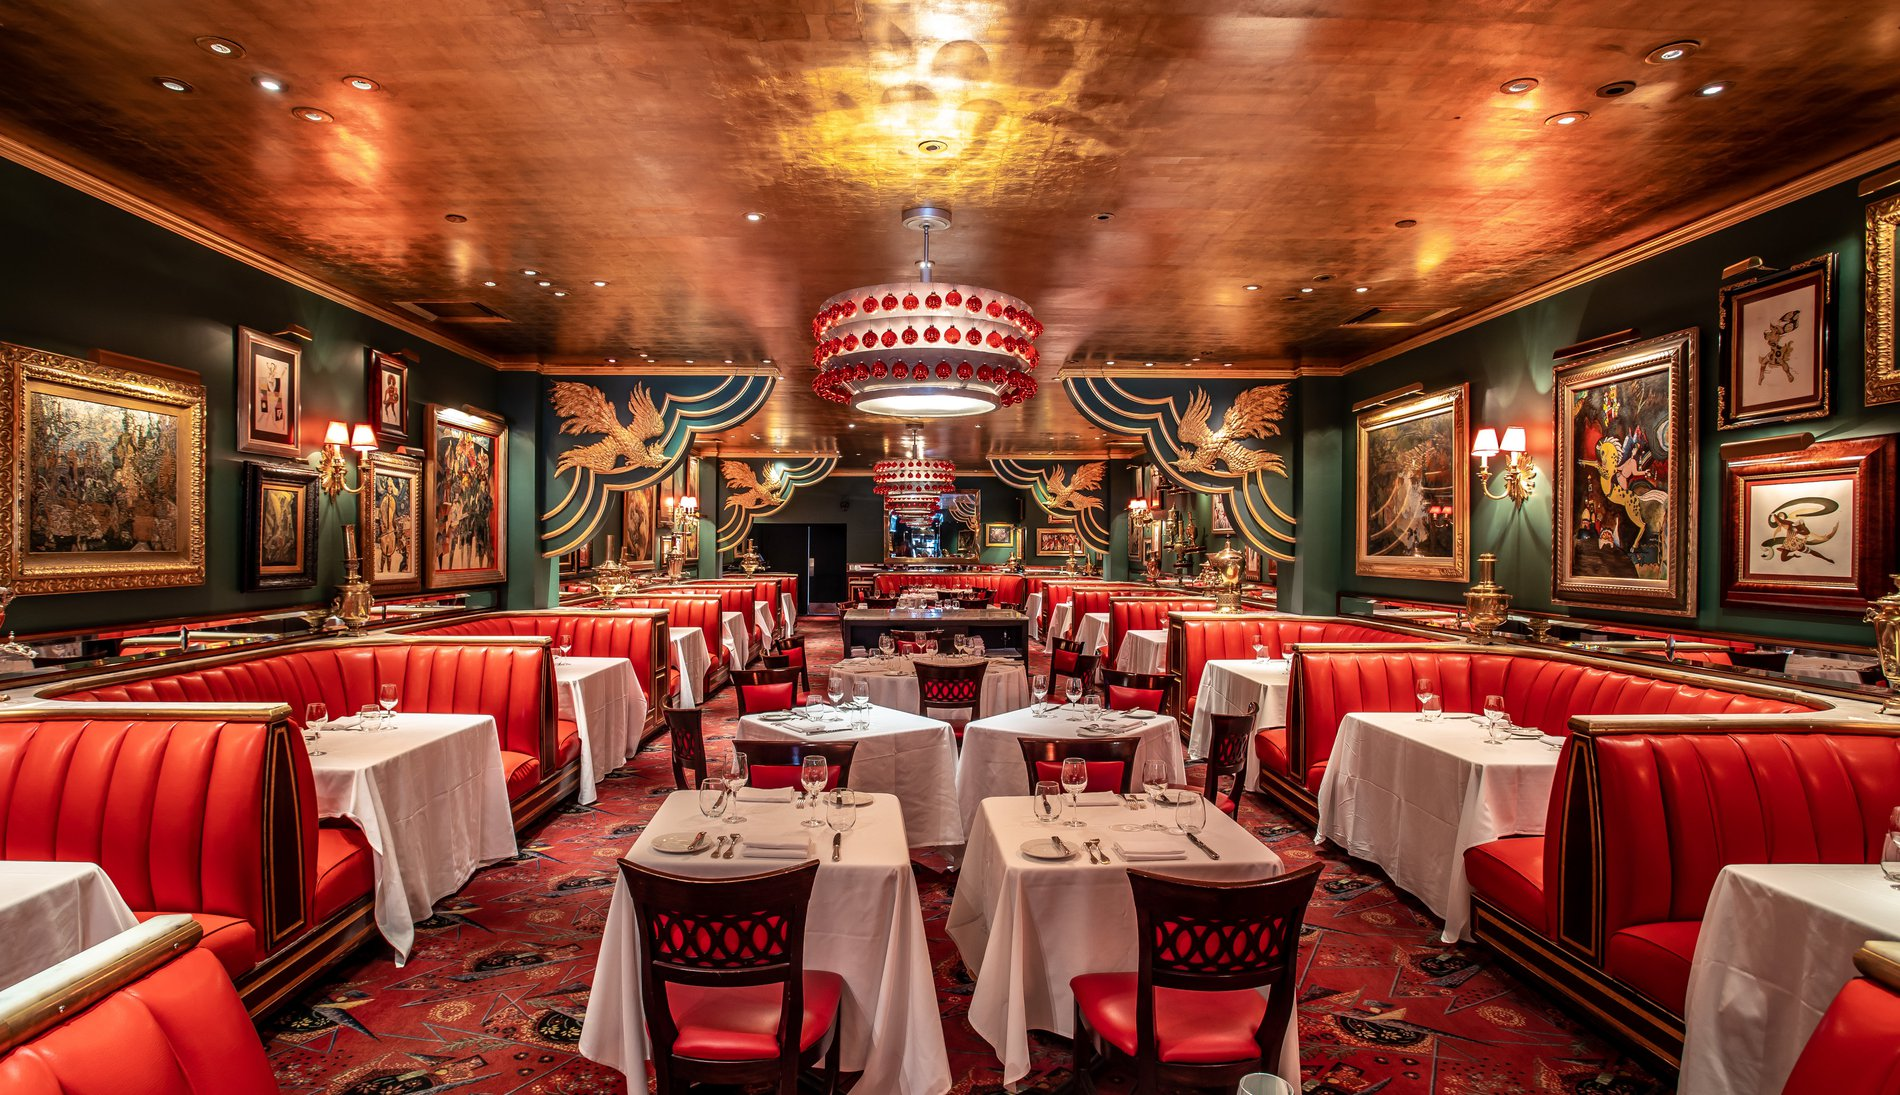 The Russian Tea Room Iconic Restaurant Midtown Central